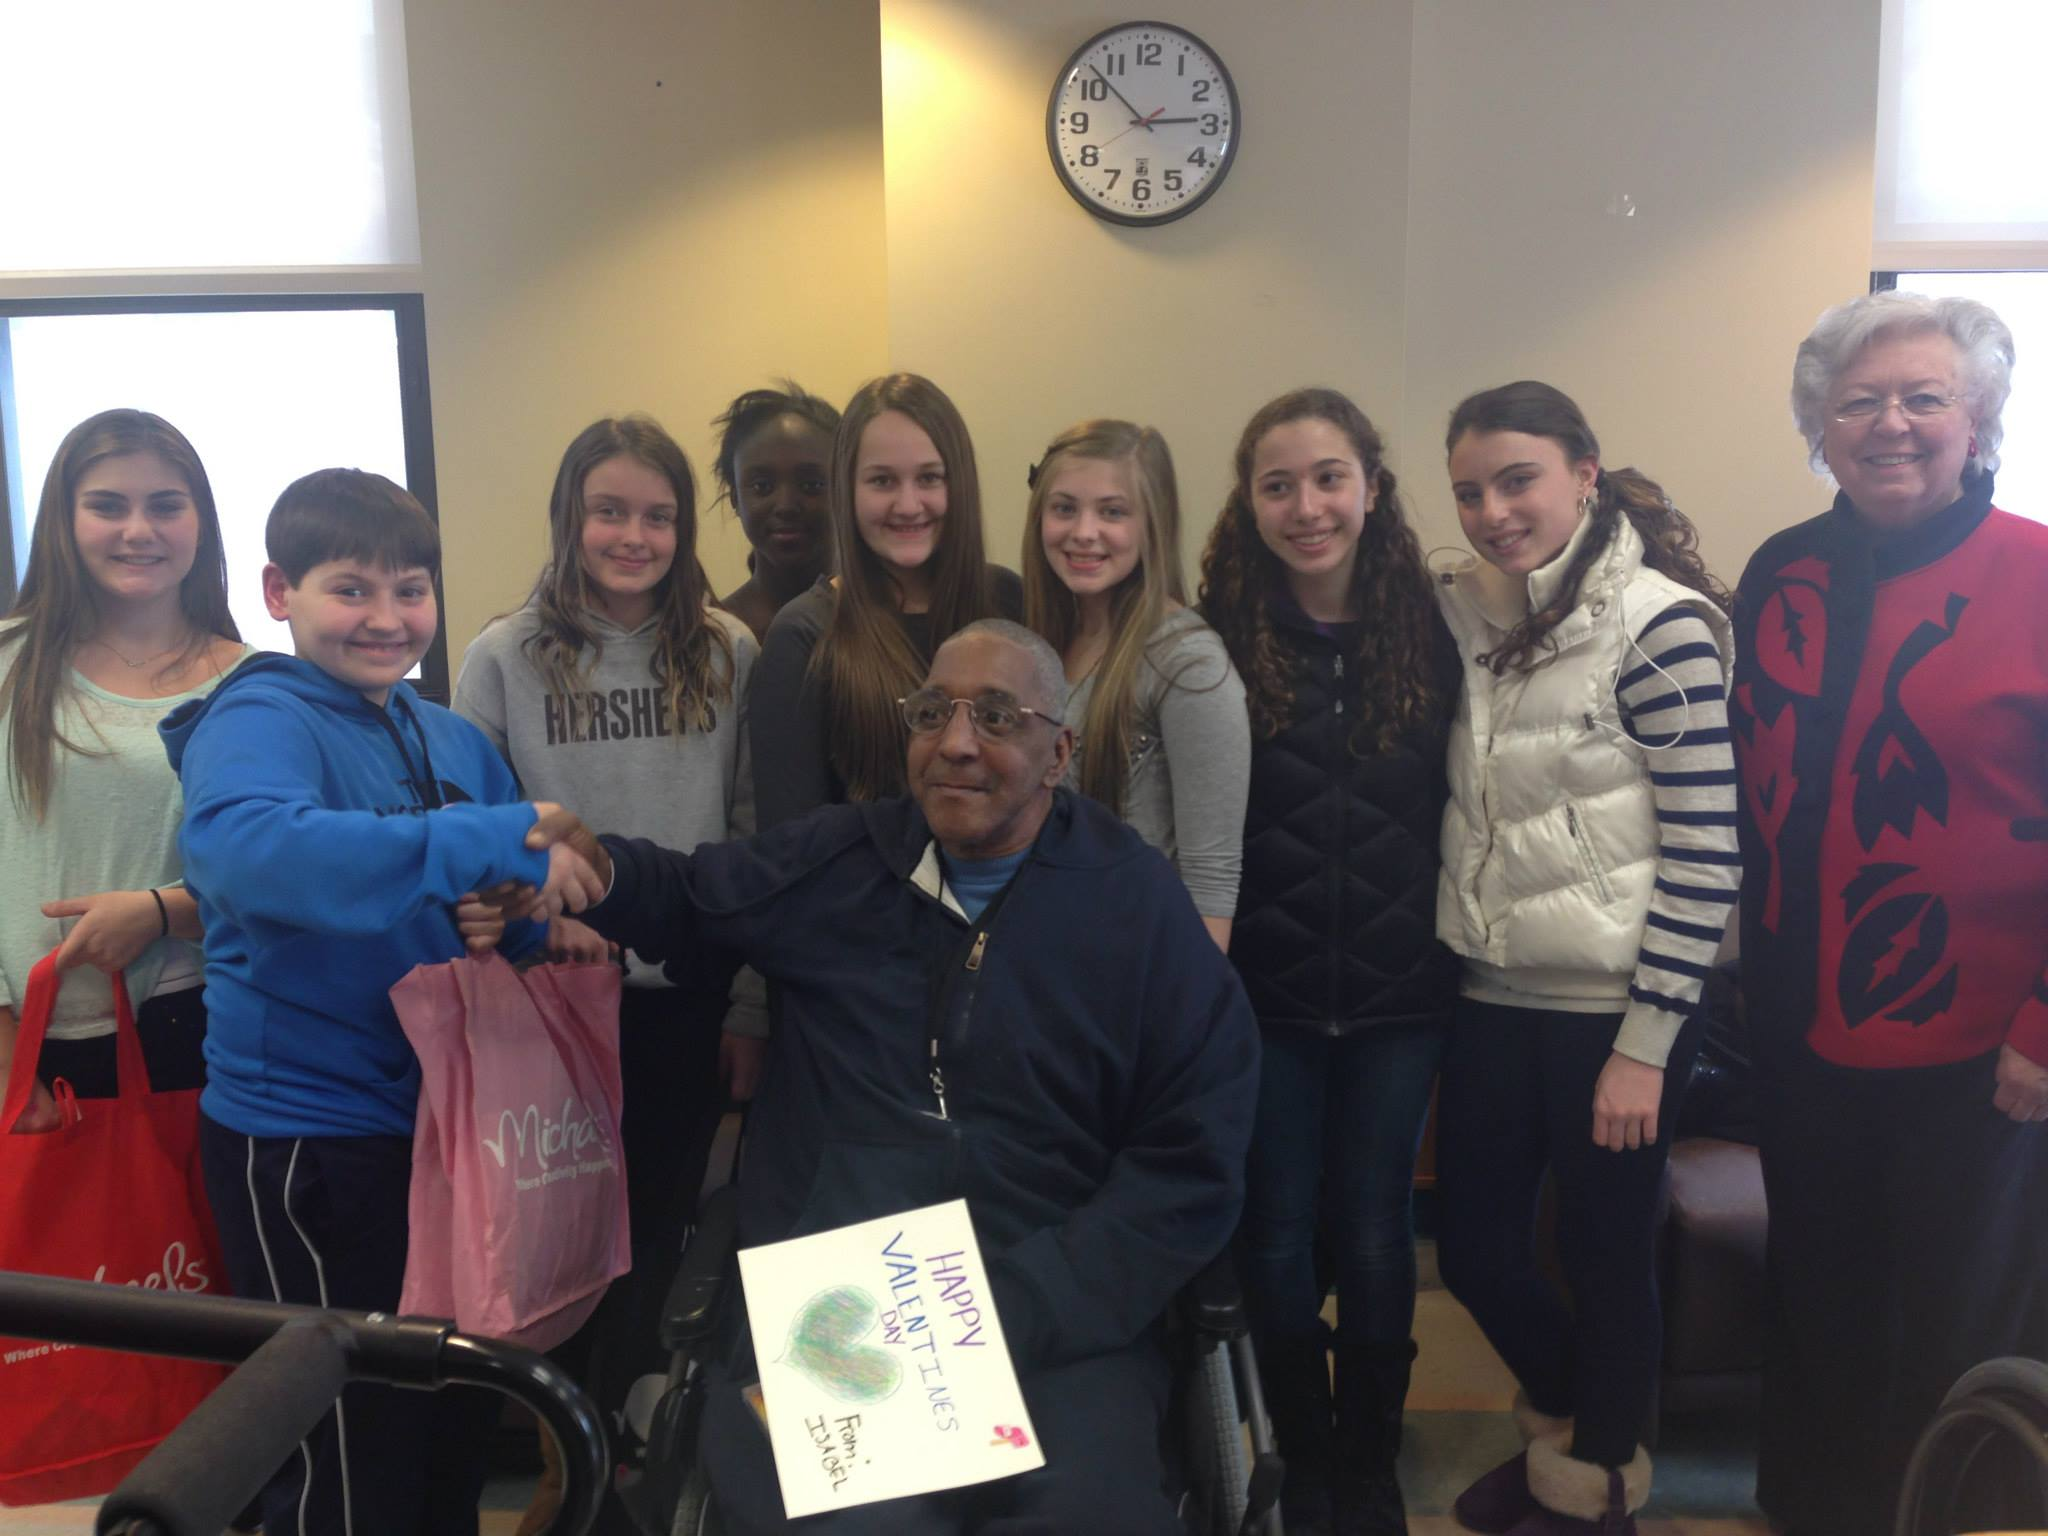 Sandy and middle school students from the Hendrick Hudson School District visited with veterans at the Veterans Affairs Medical Center in Montrose. They spoke with many veterans residing there and handed out belated Valentine's Day cards to thank the veterans for their service.